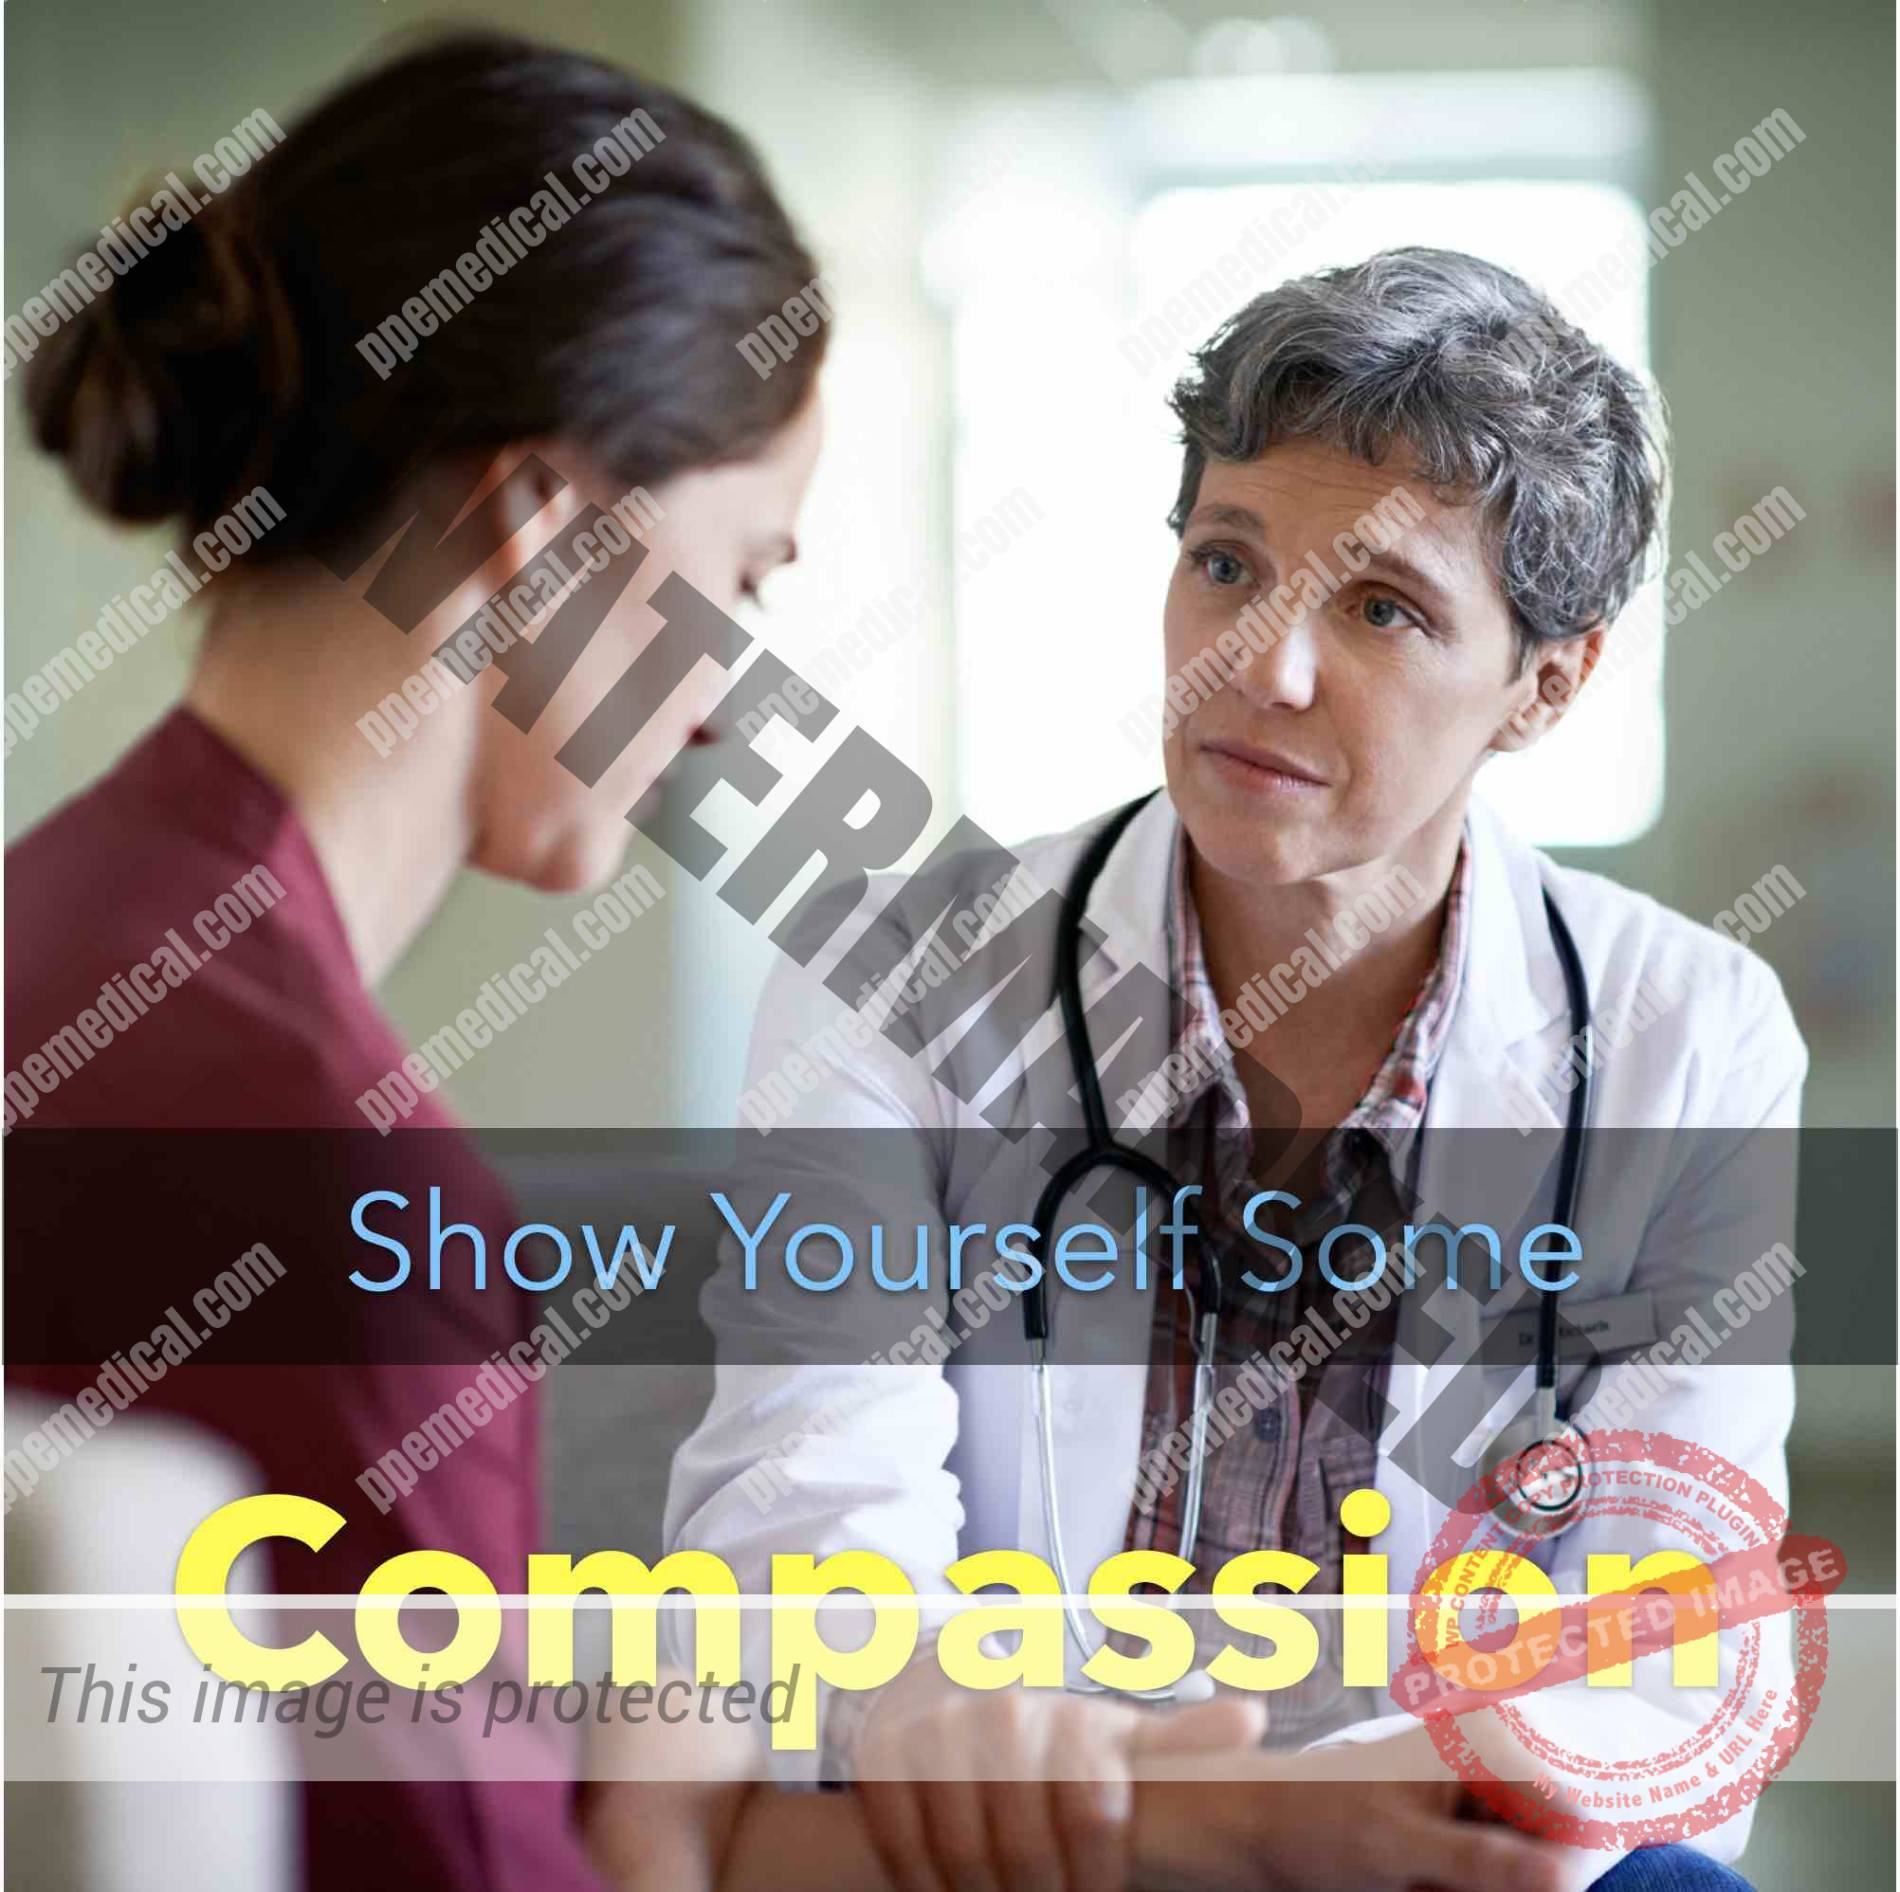 Show Yourself some Compassion